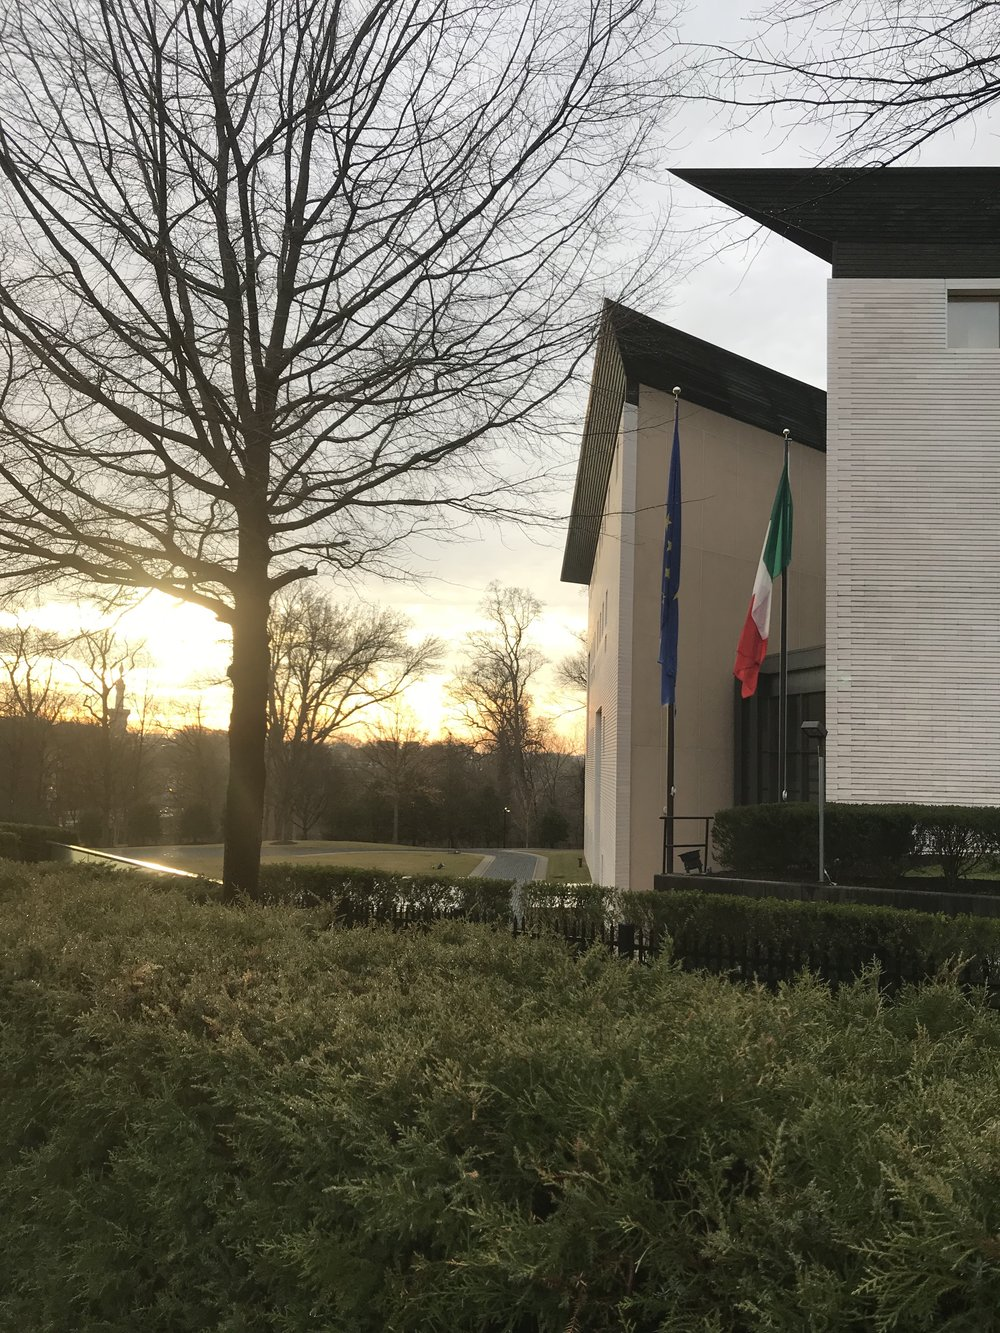 Sunrise at the Embassy of Italy.